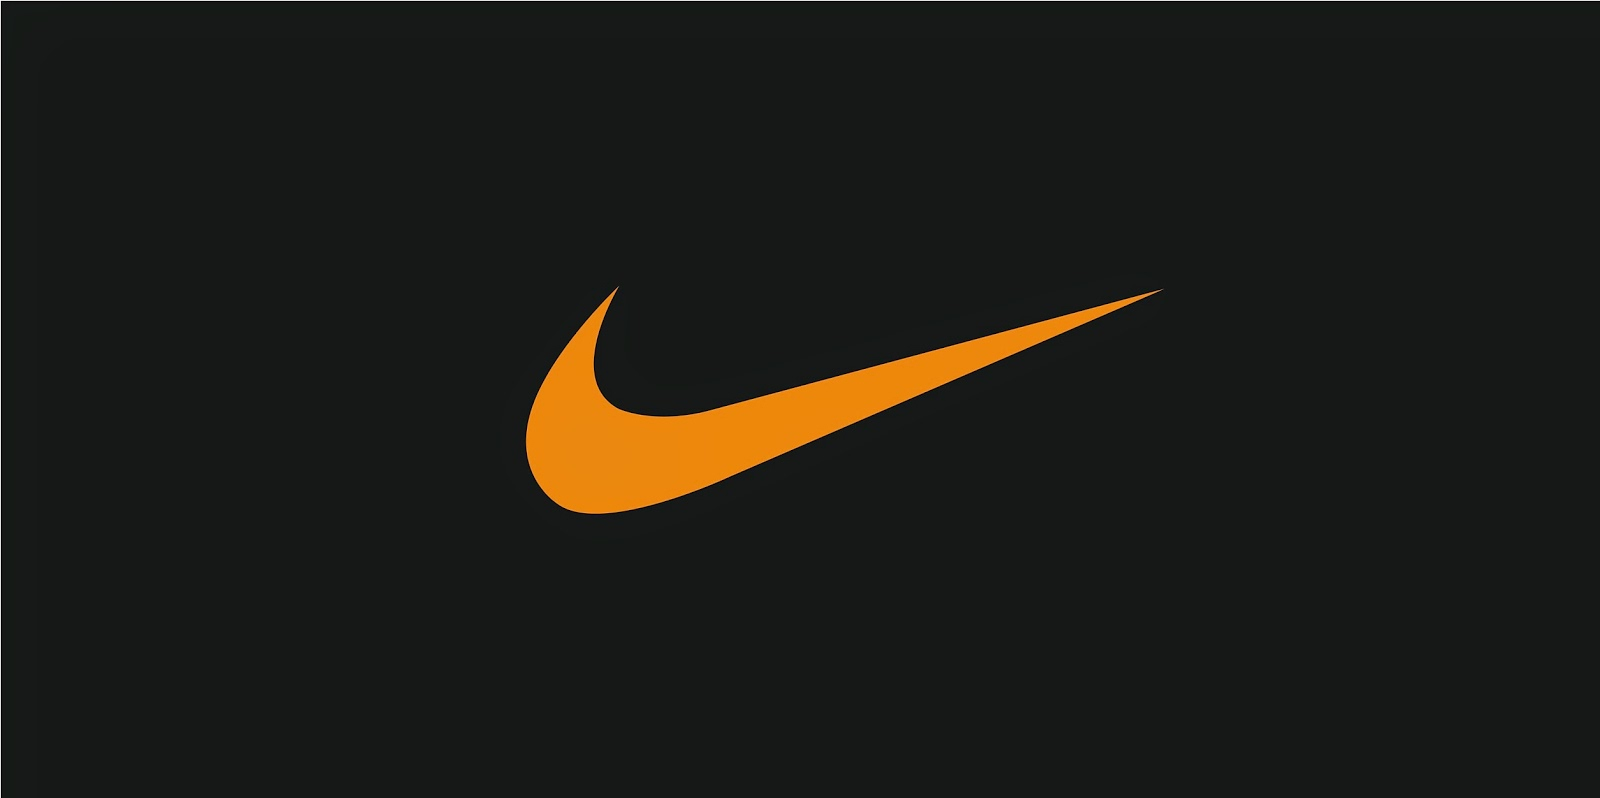 Cool nike logos 102 103171 images hd wallpapers wallfoycom - Nike wallpaper hd ...